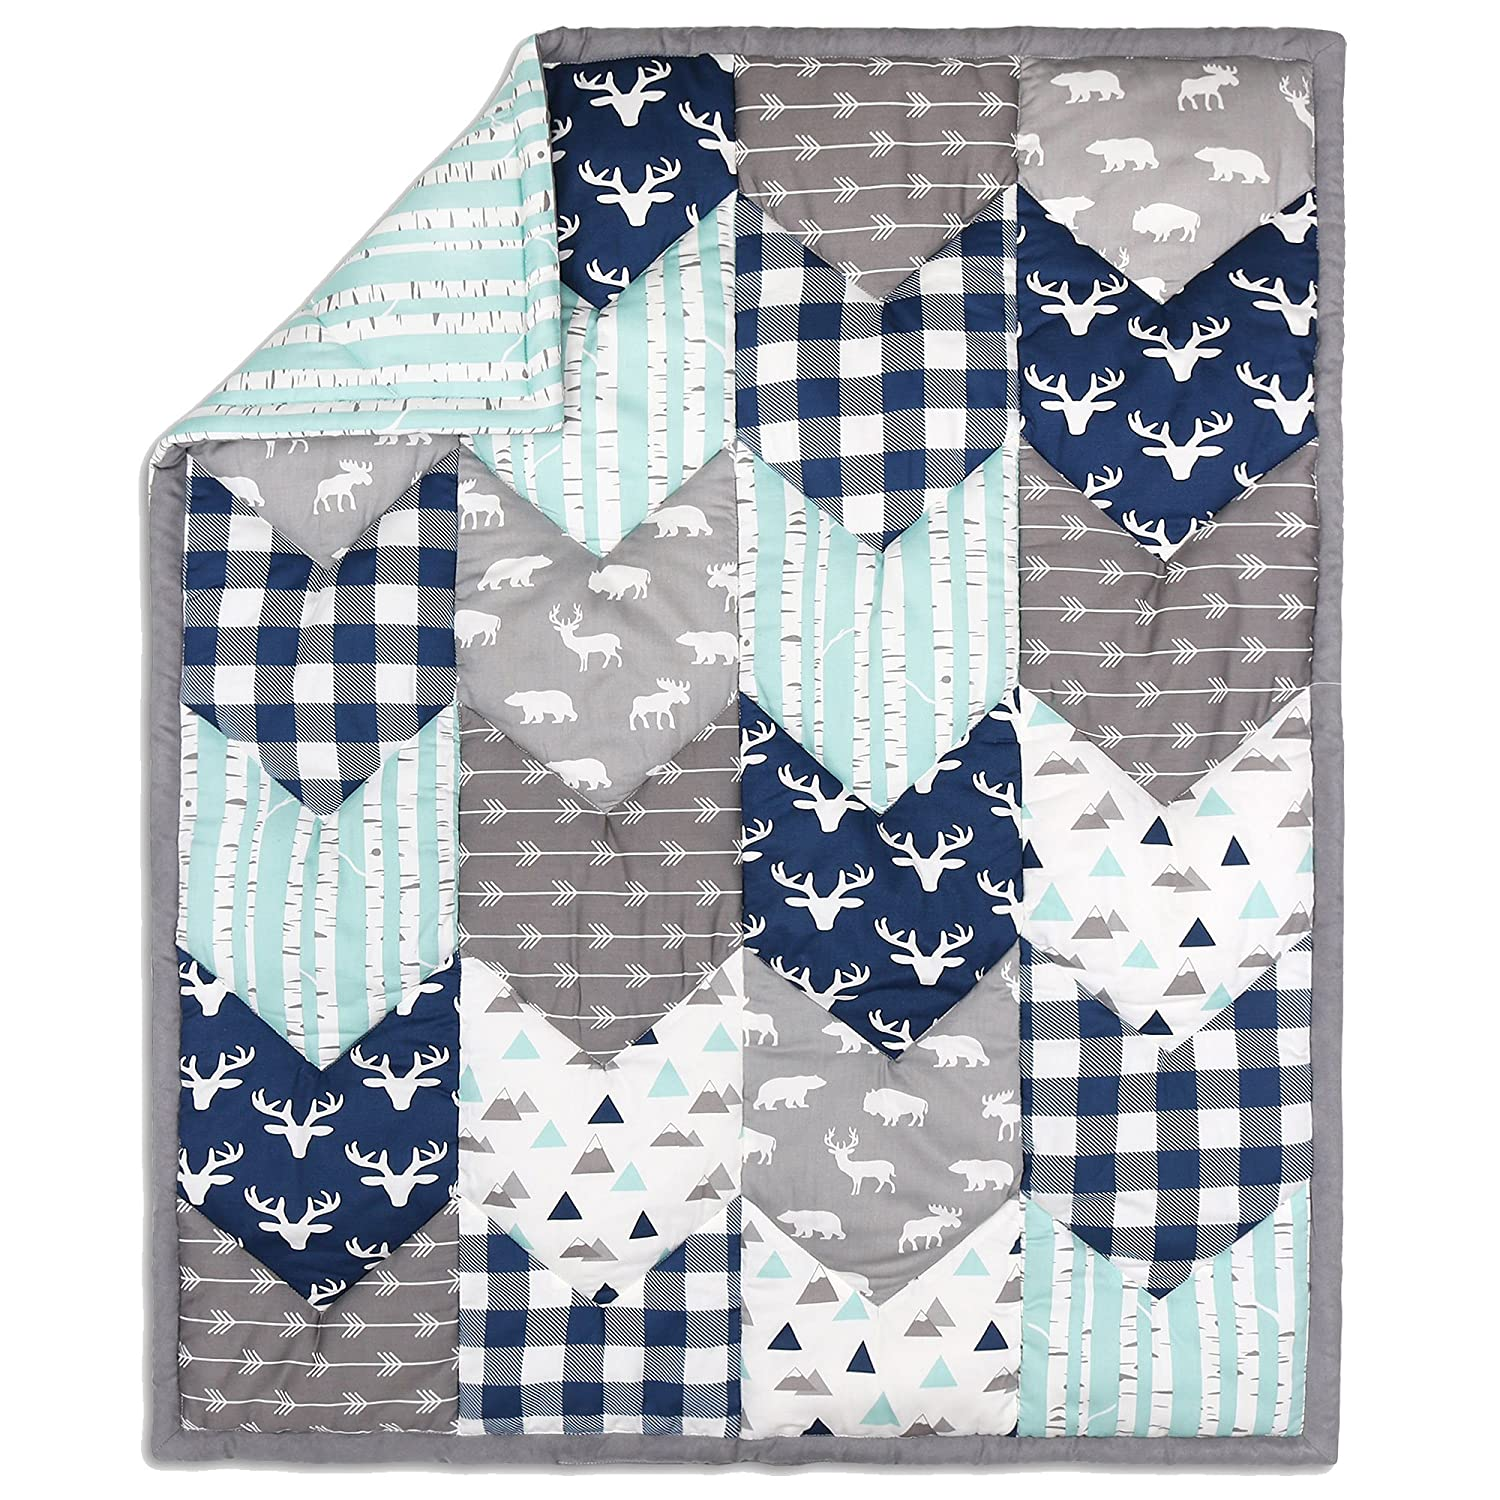 Woodland Trail Chevron Patchwork Quilt by The Peanut Shell